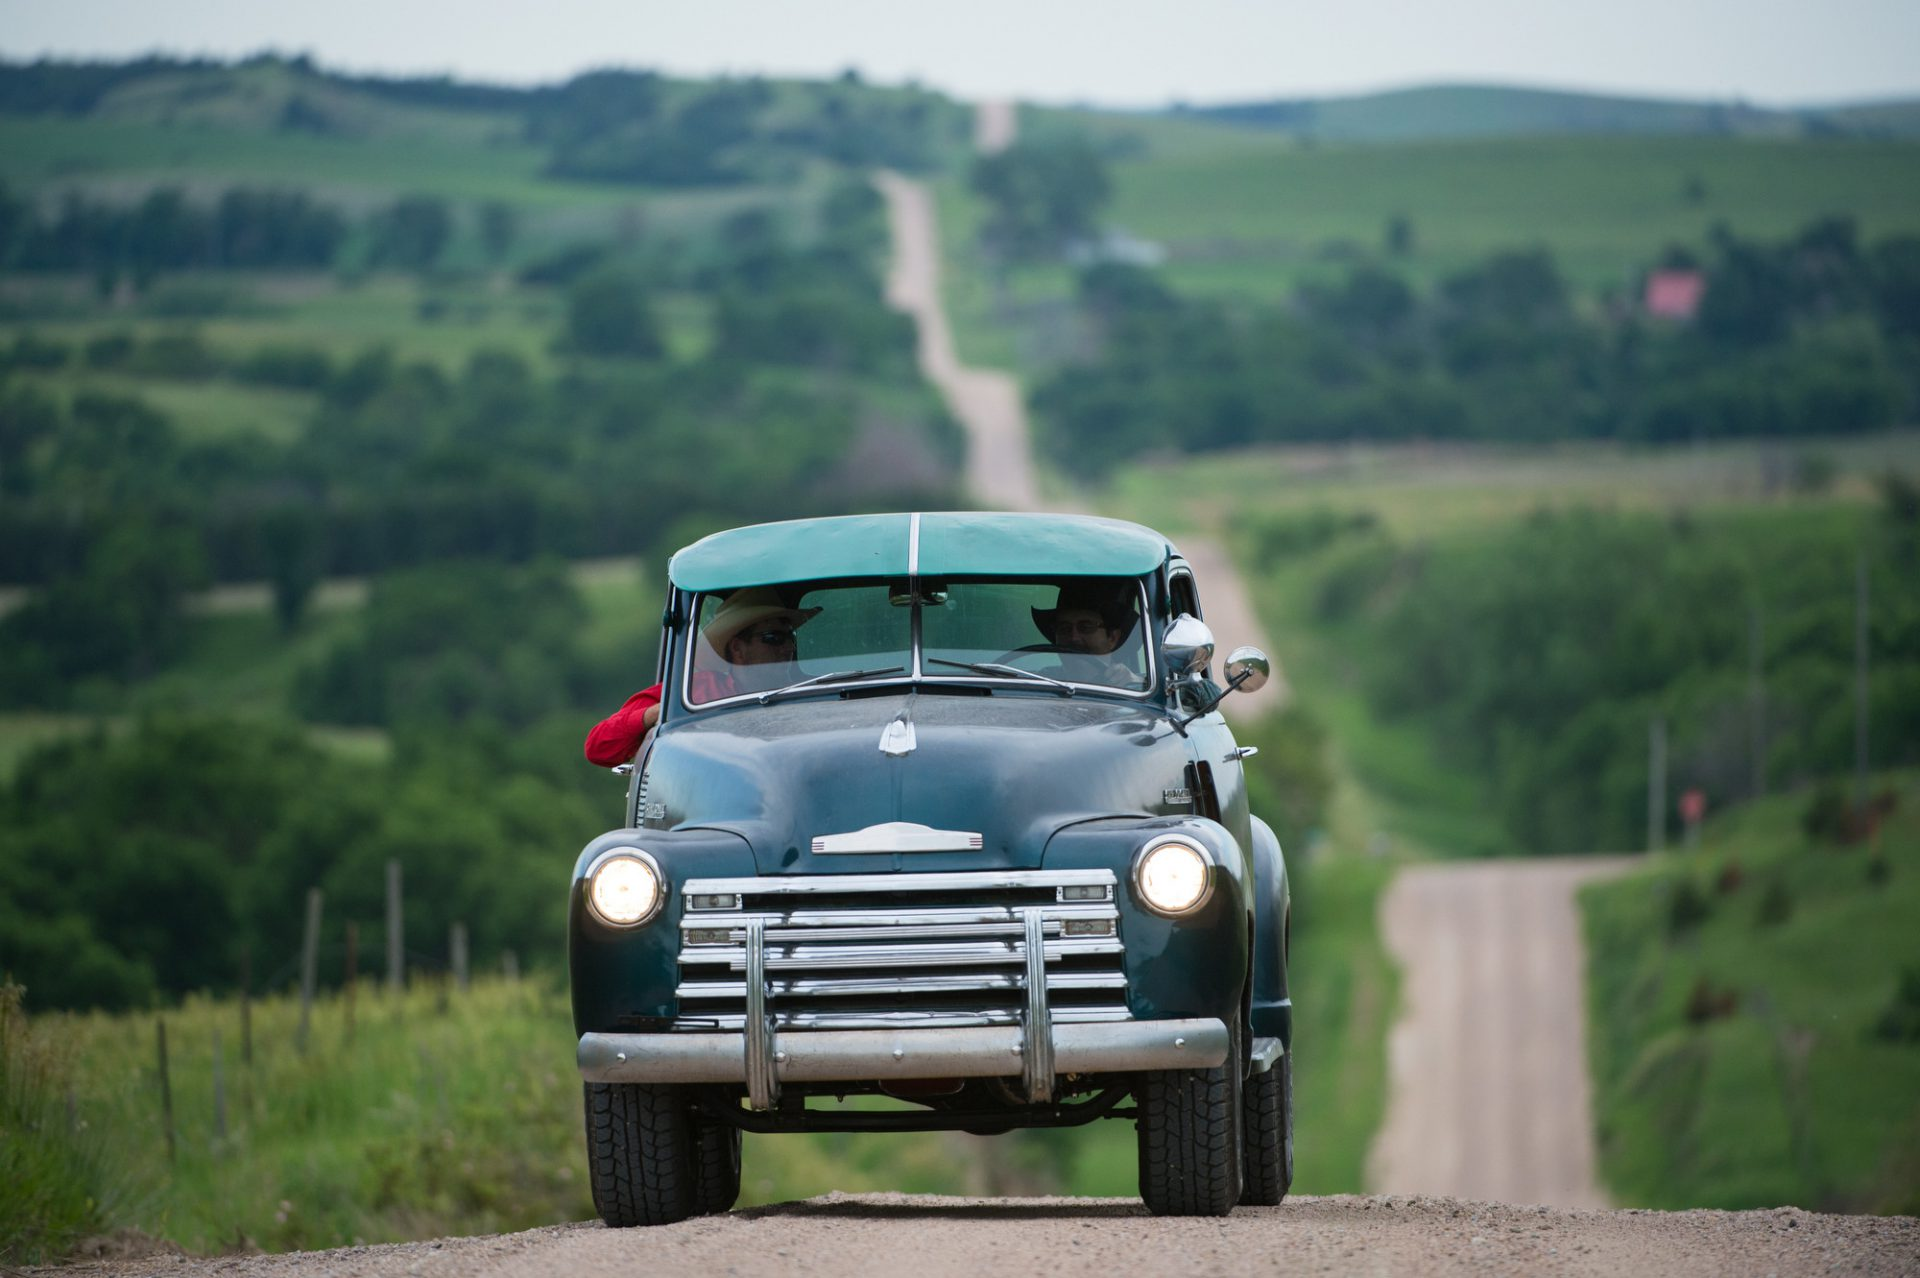 Photo: A father and son drive their truck on a gravel road.